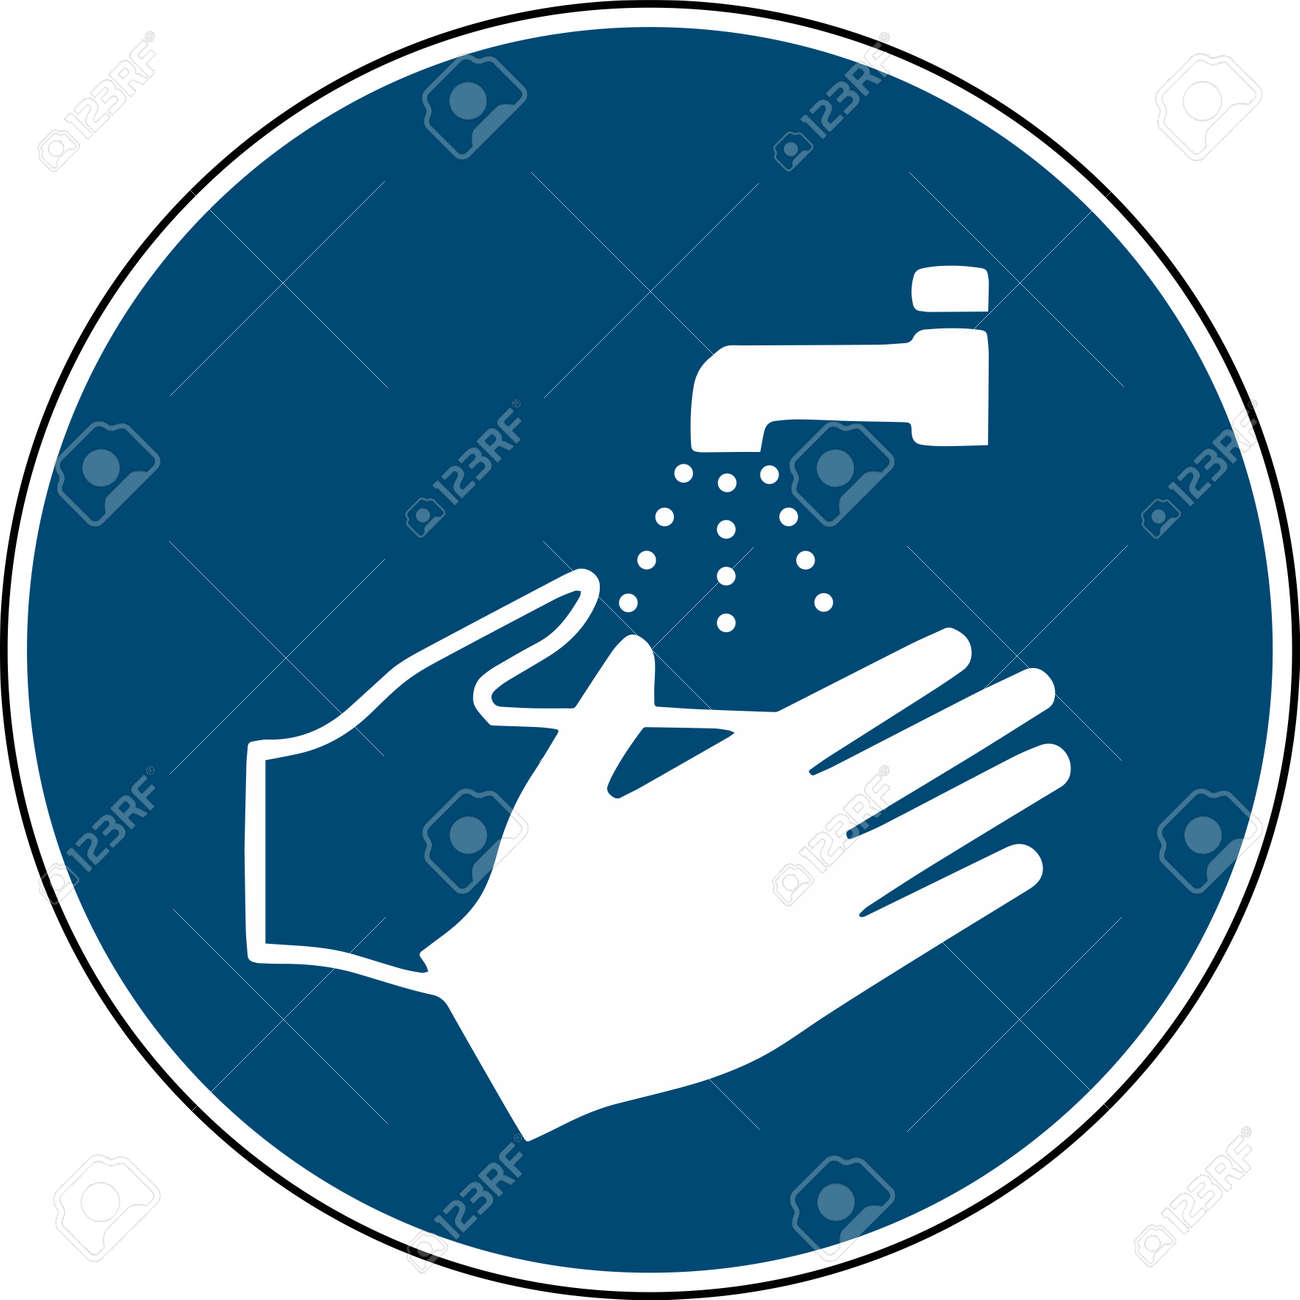 wash your hands sign - mandatory sign iso 7010 - 124253149